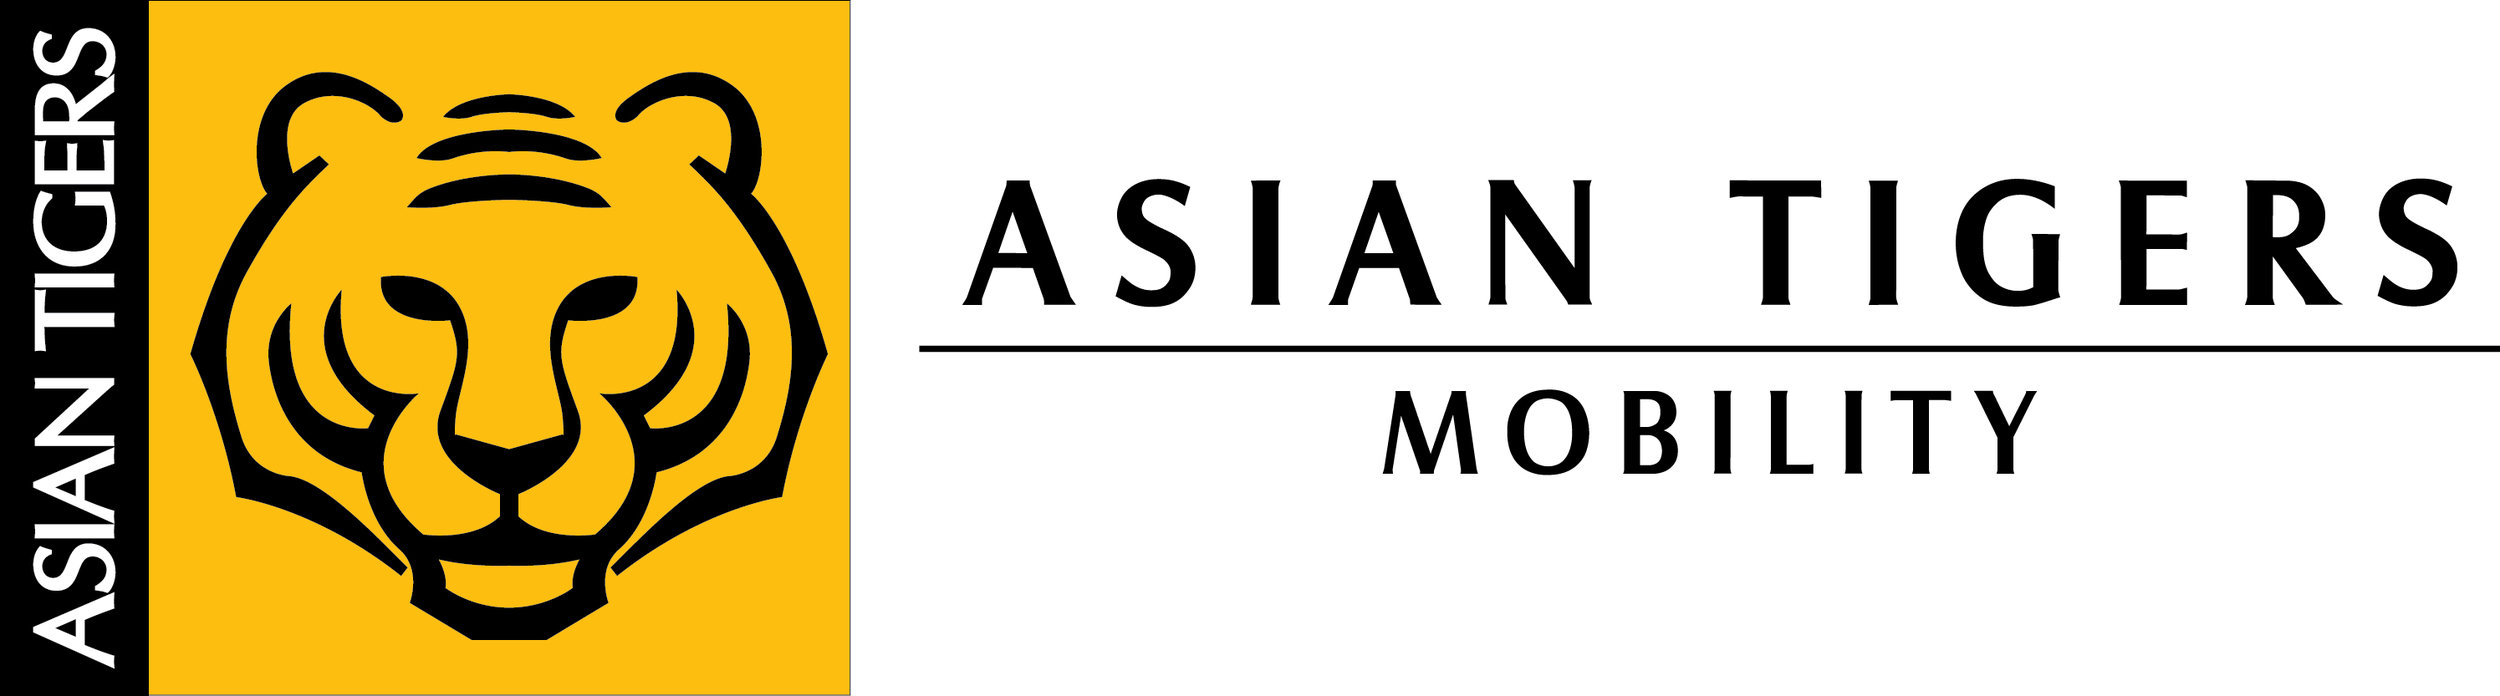 A special thank you to Asian Tigers, our event sponsor!